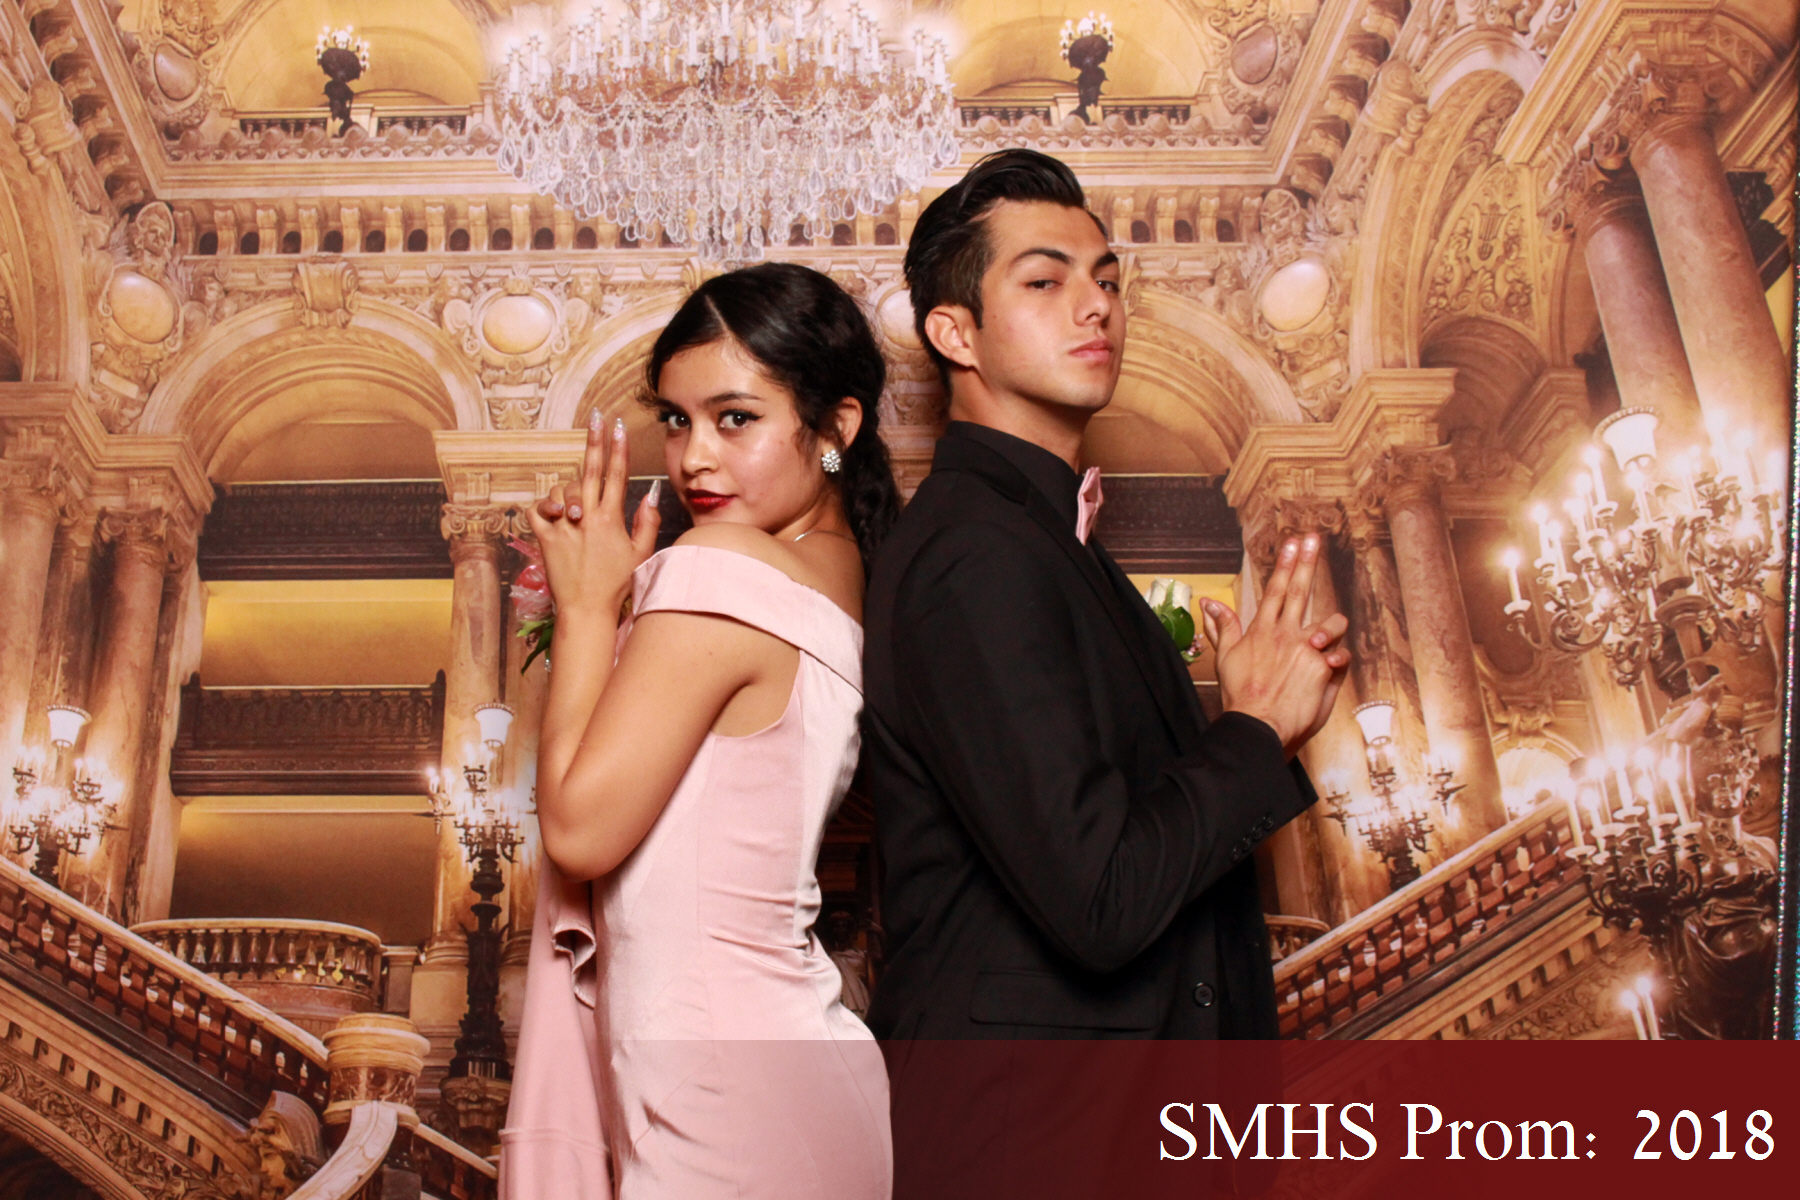 Prom Photo Booth Sample - Las Vegas